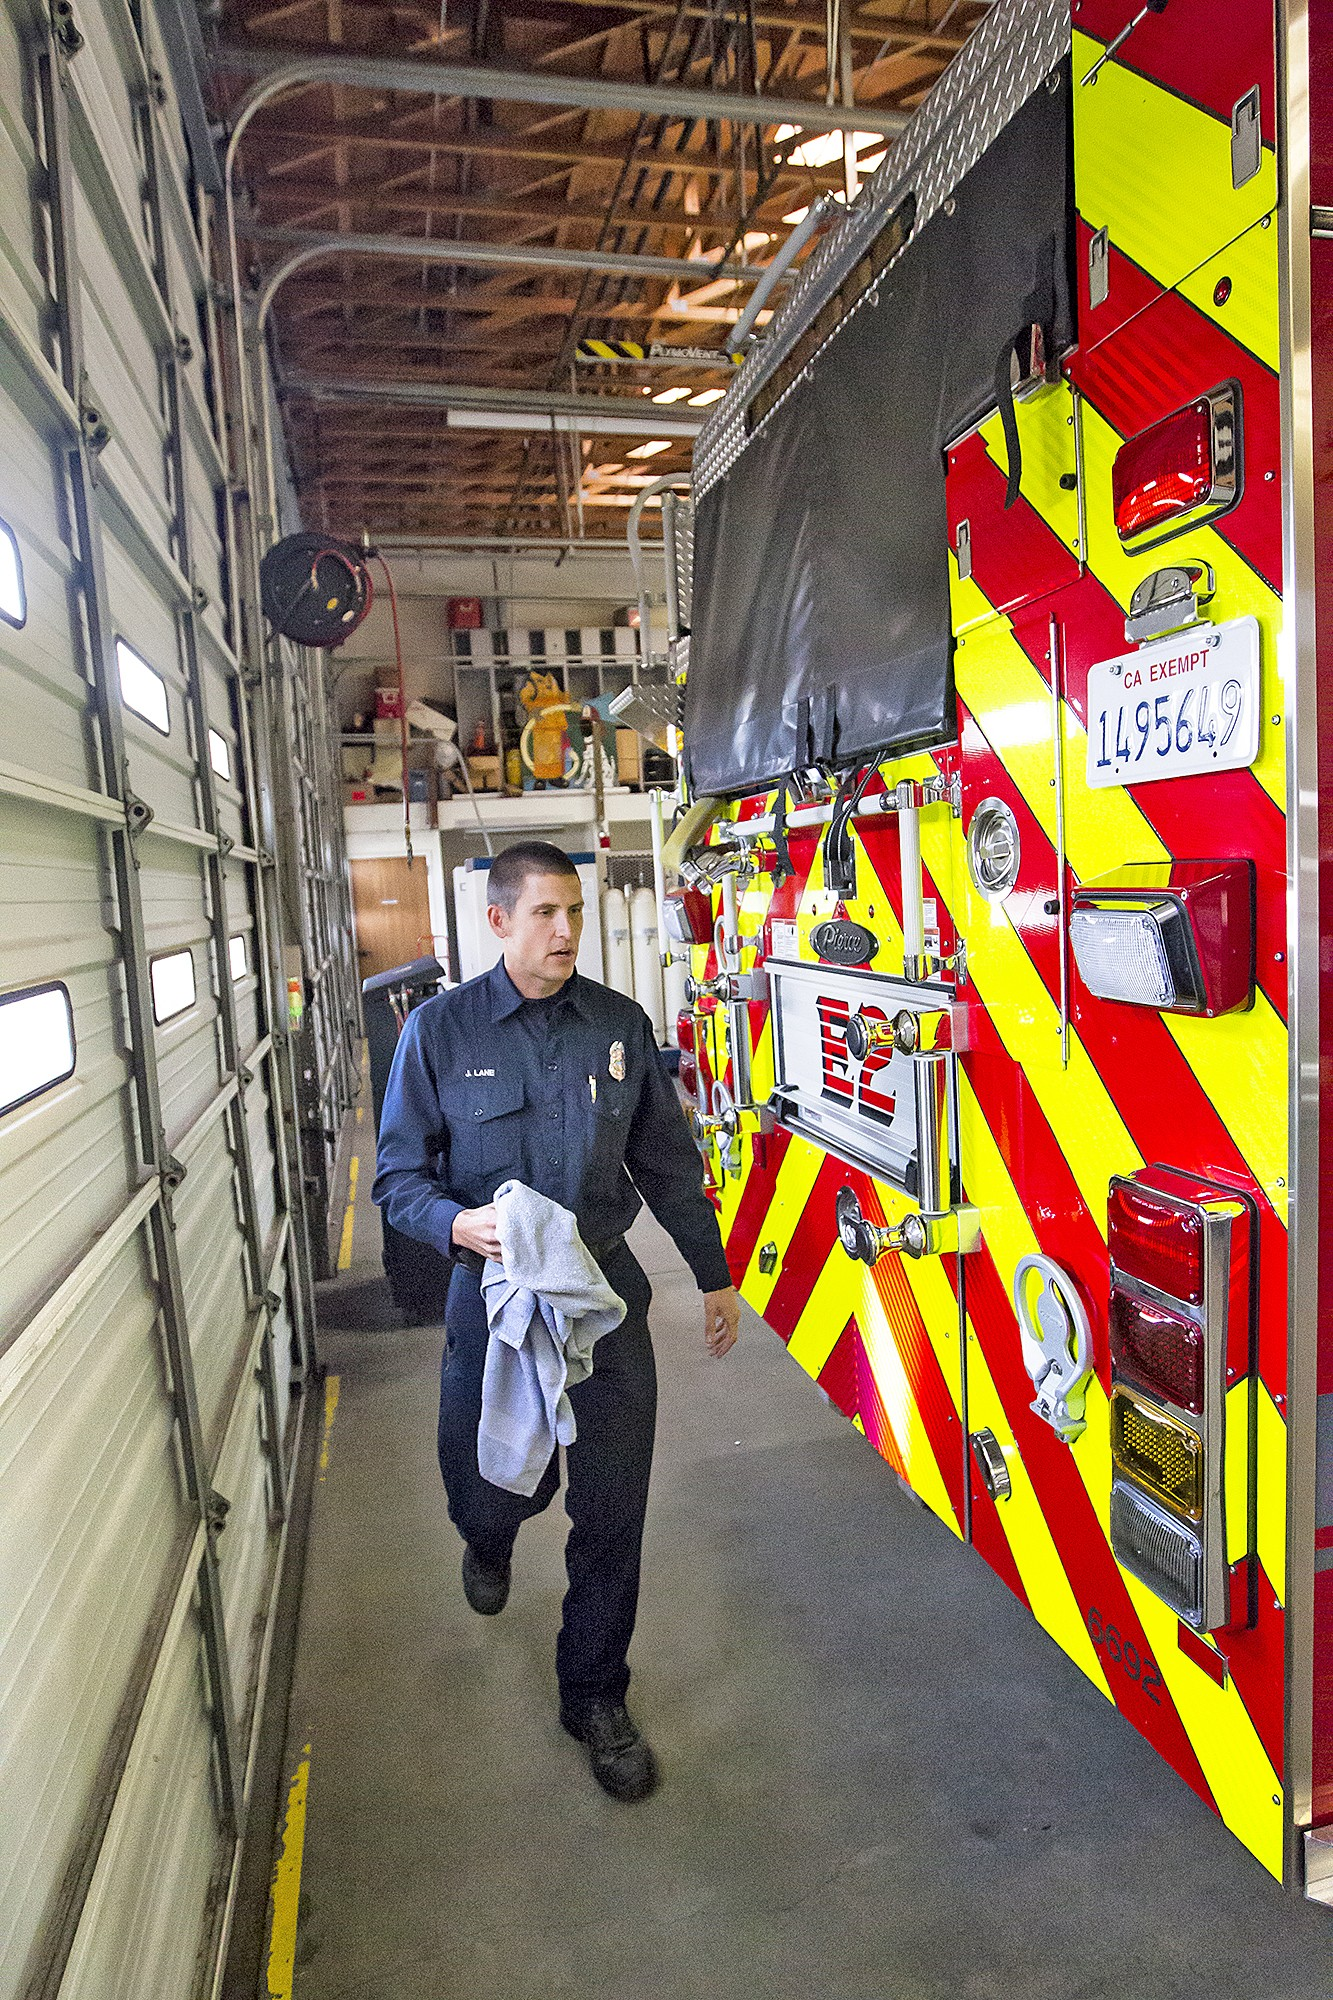 Grover Talks Funding Its Fire Service News San Luis Obispo New